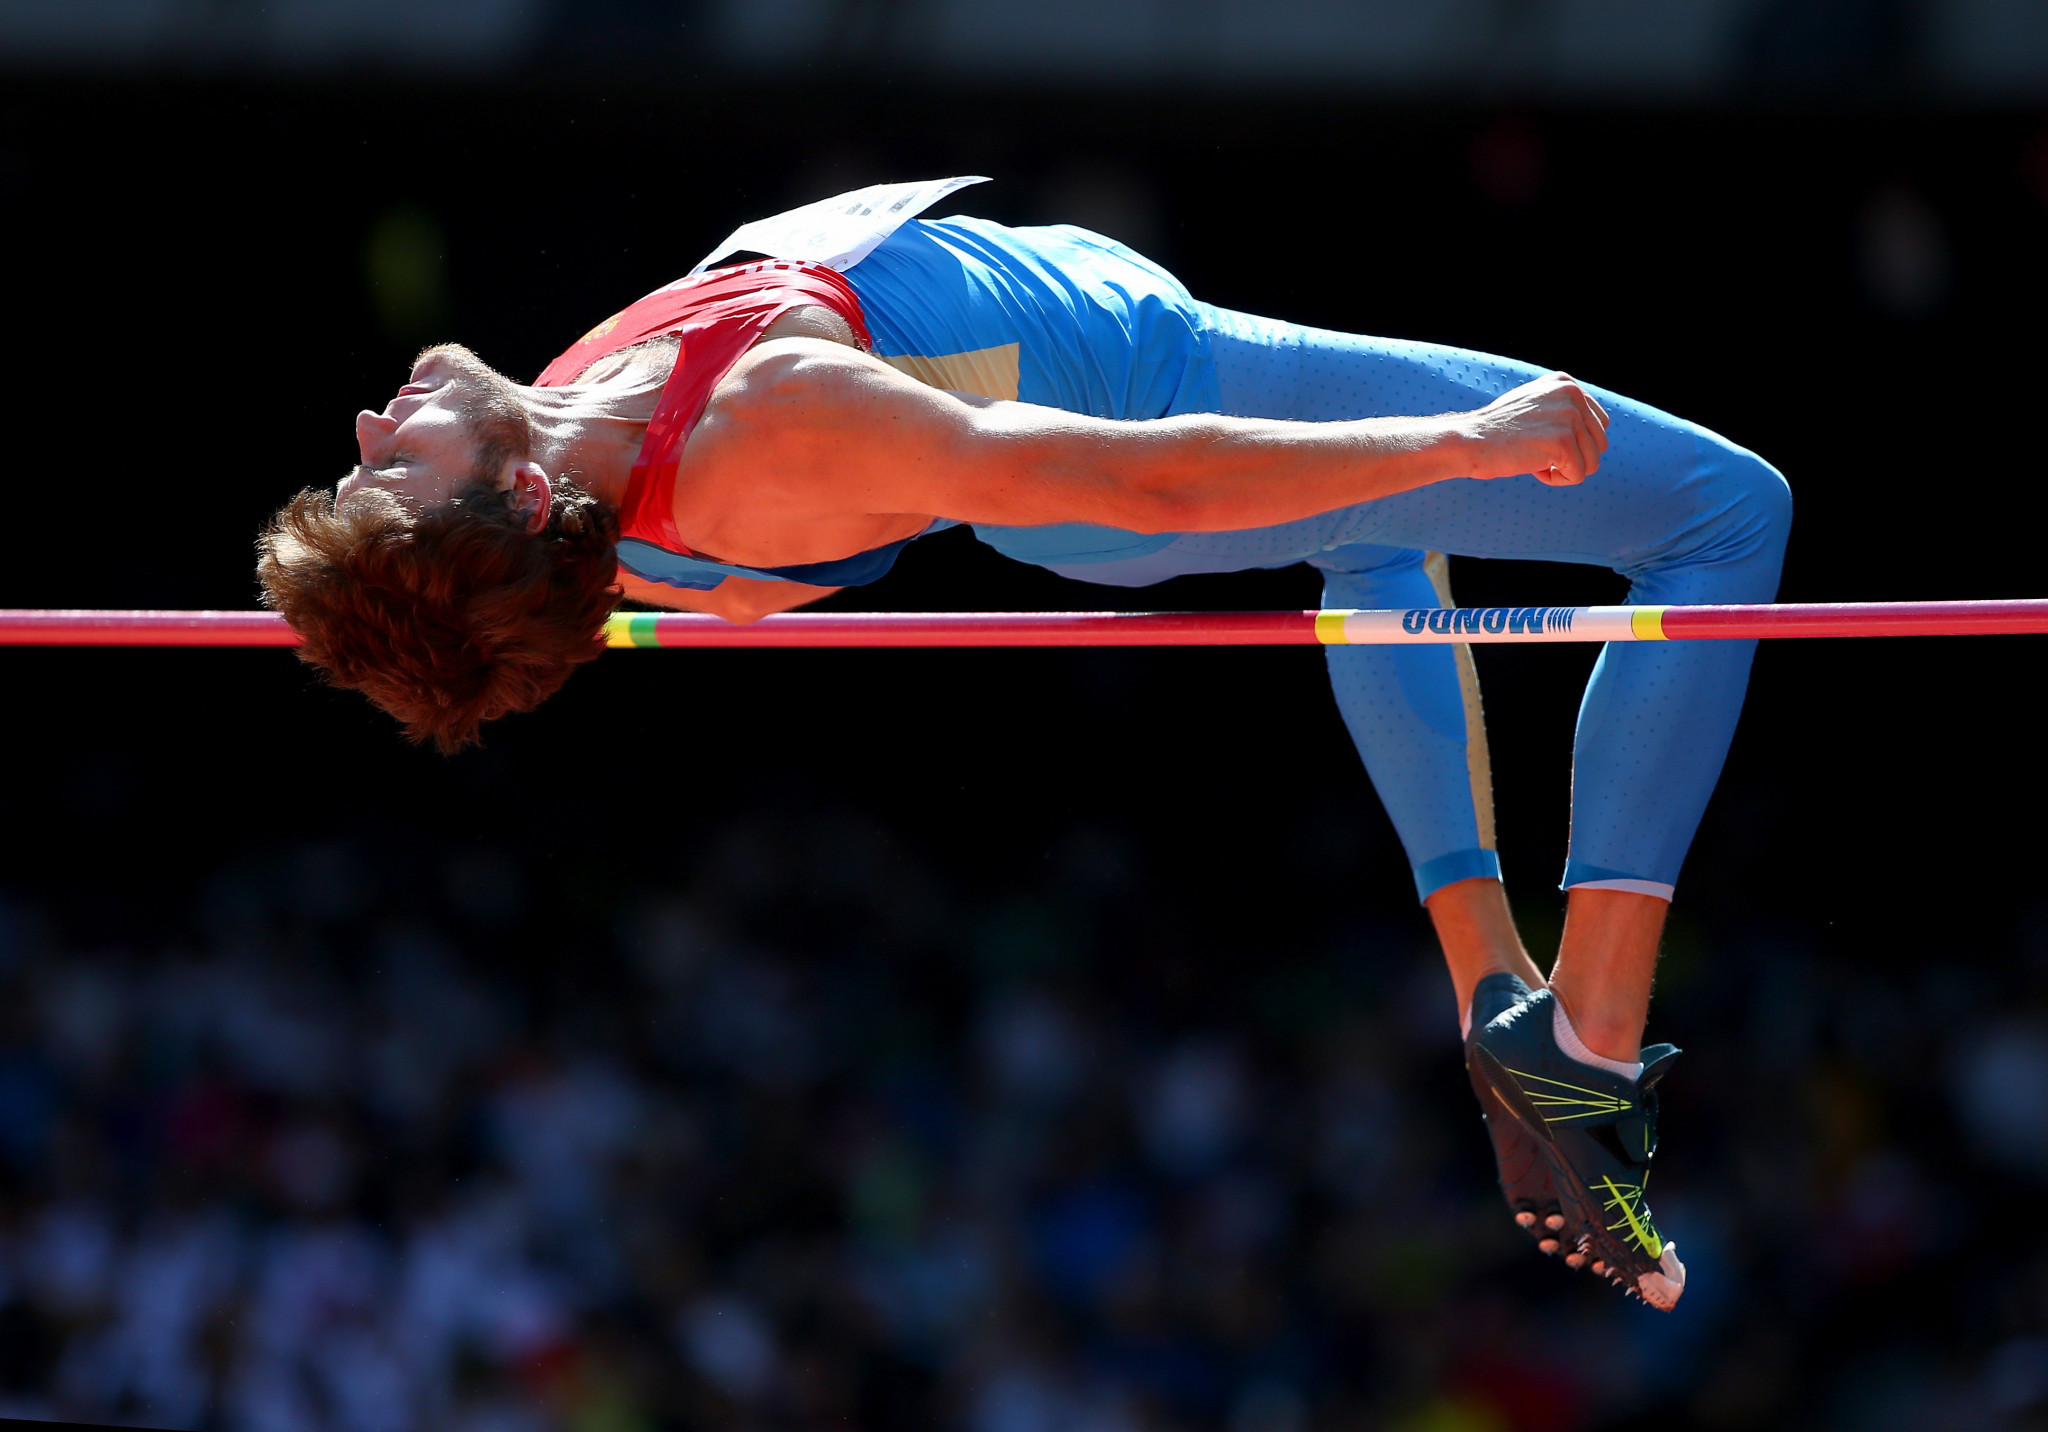 London 2012 high jump champion Ivan Ukhov is among five Russians to have appealed the CAS ruling ©Getty Images